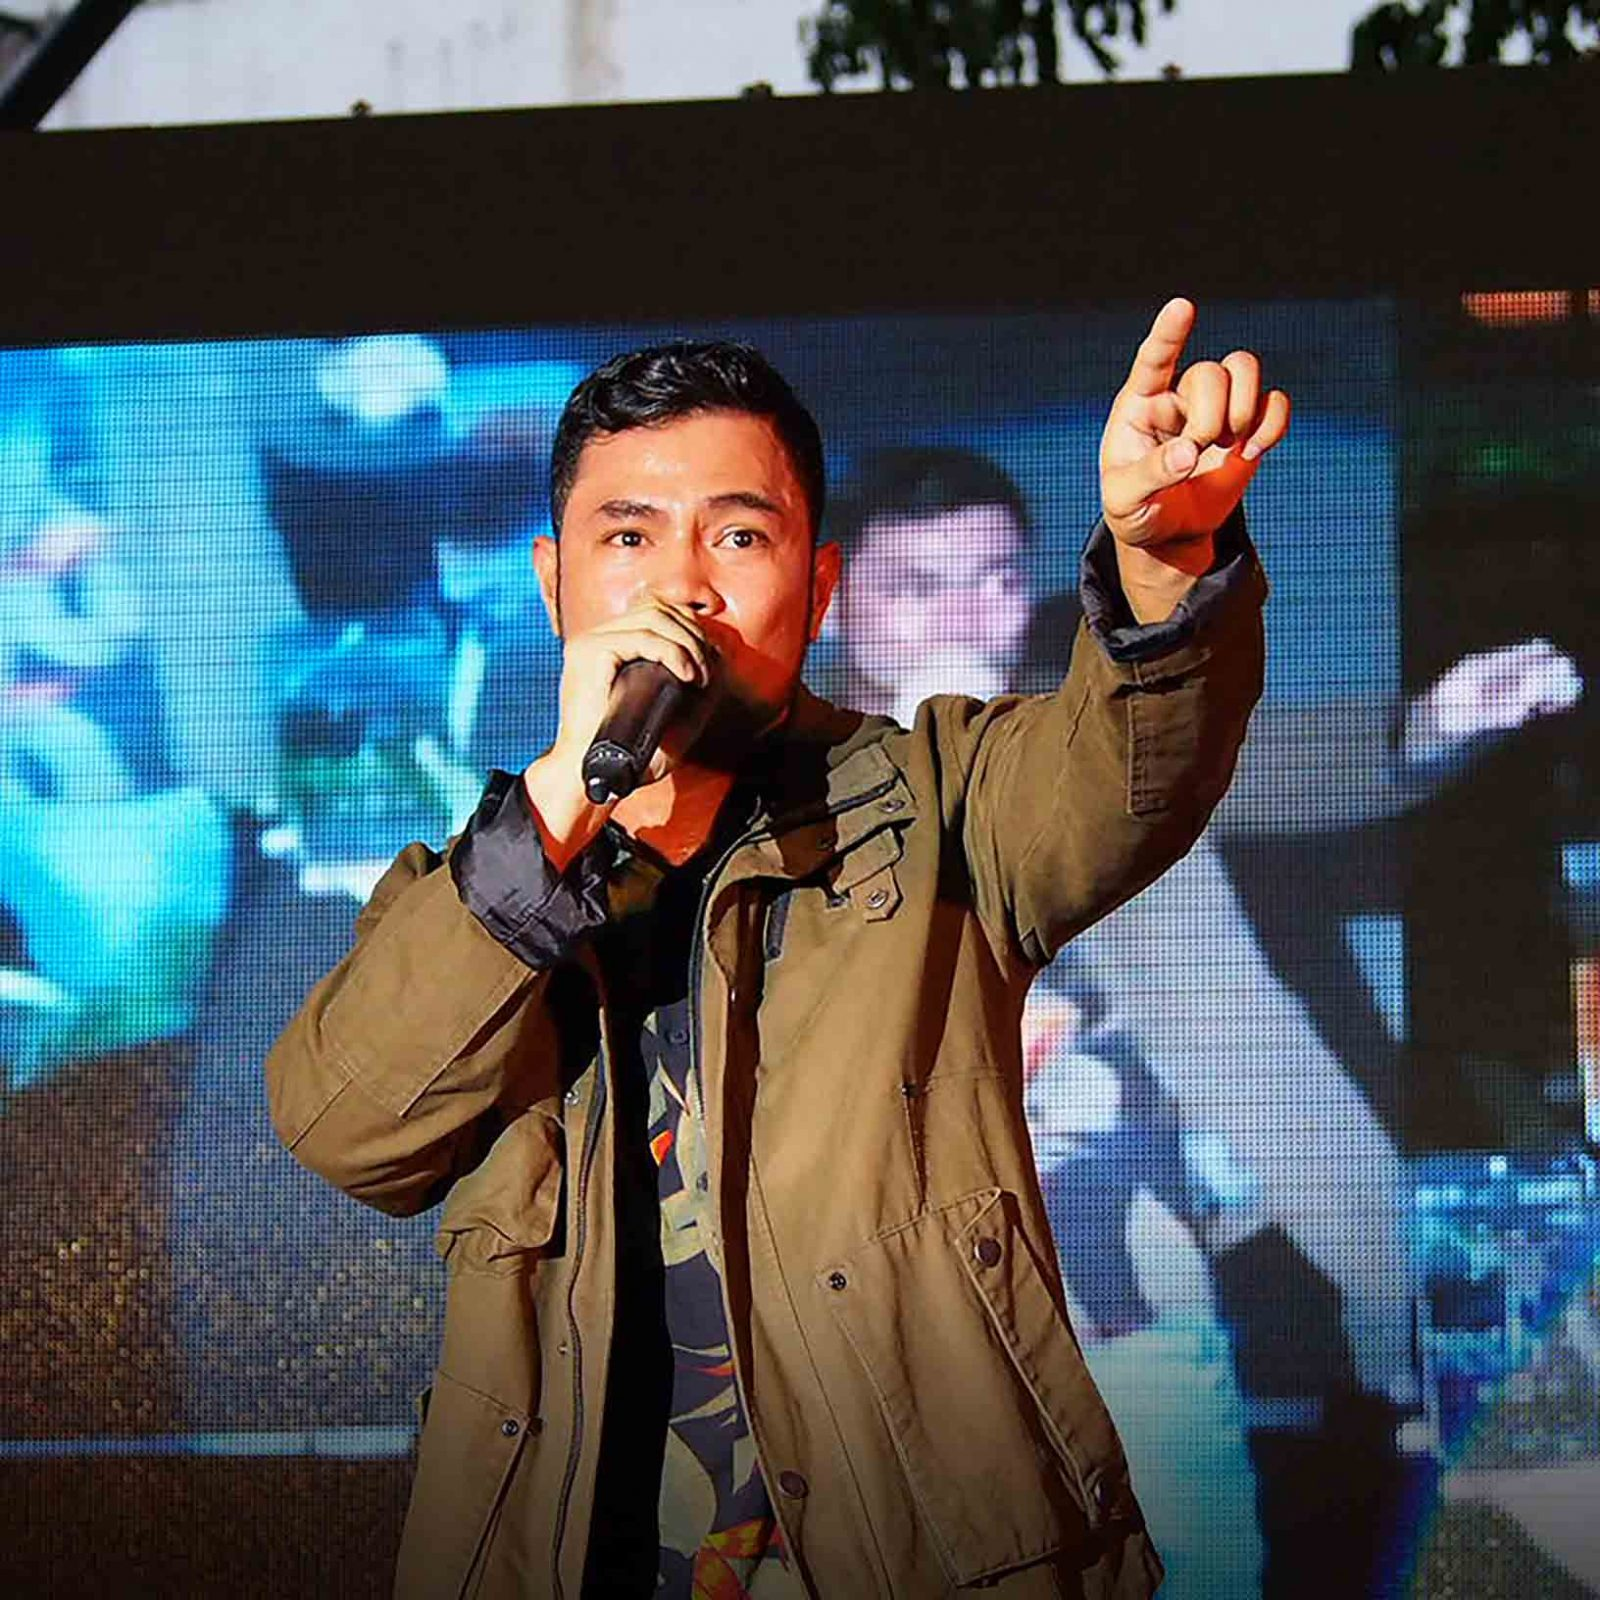 OPM star Bugoy Drilon showcases his distinctive vocal style as he performs in front of his cheering fans during Wish 107.5's anniversary bash.  (Photo courtesy of Photoville International)